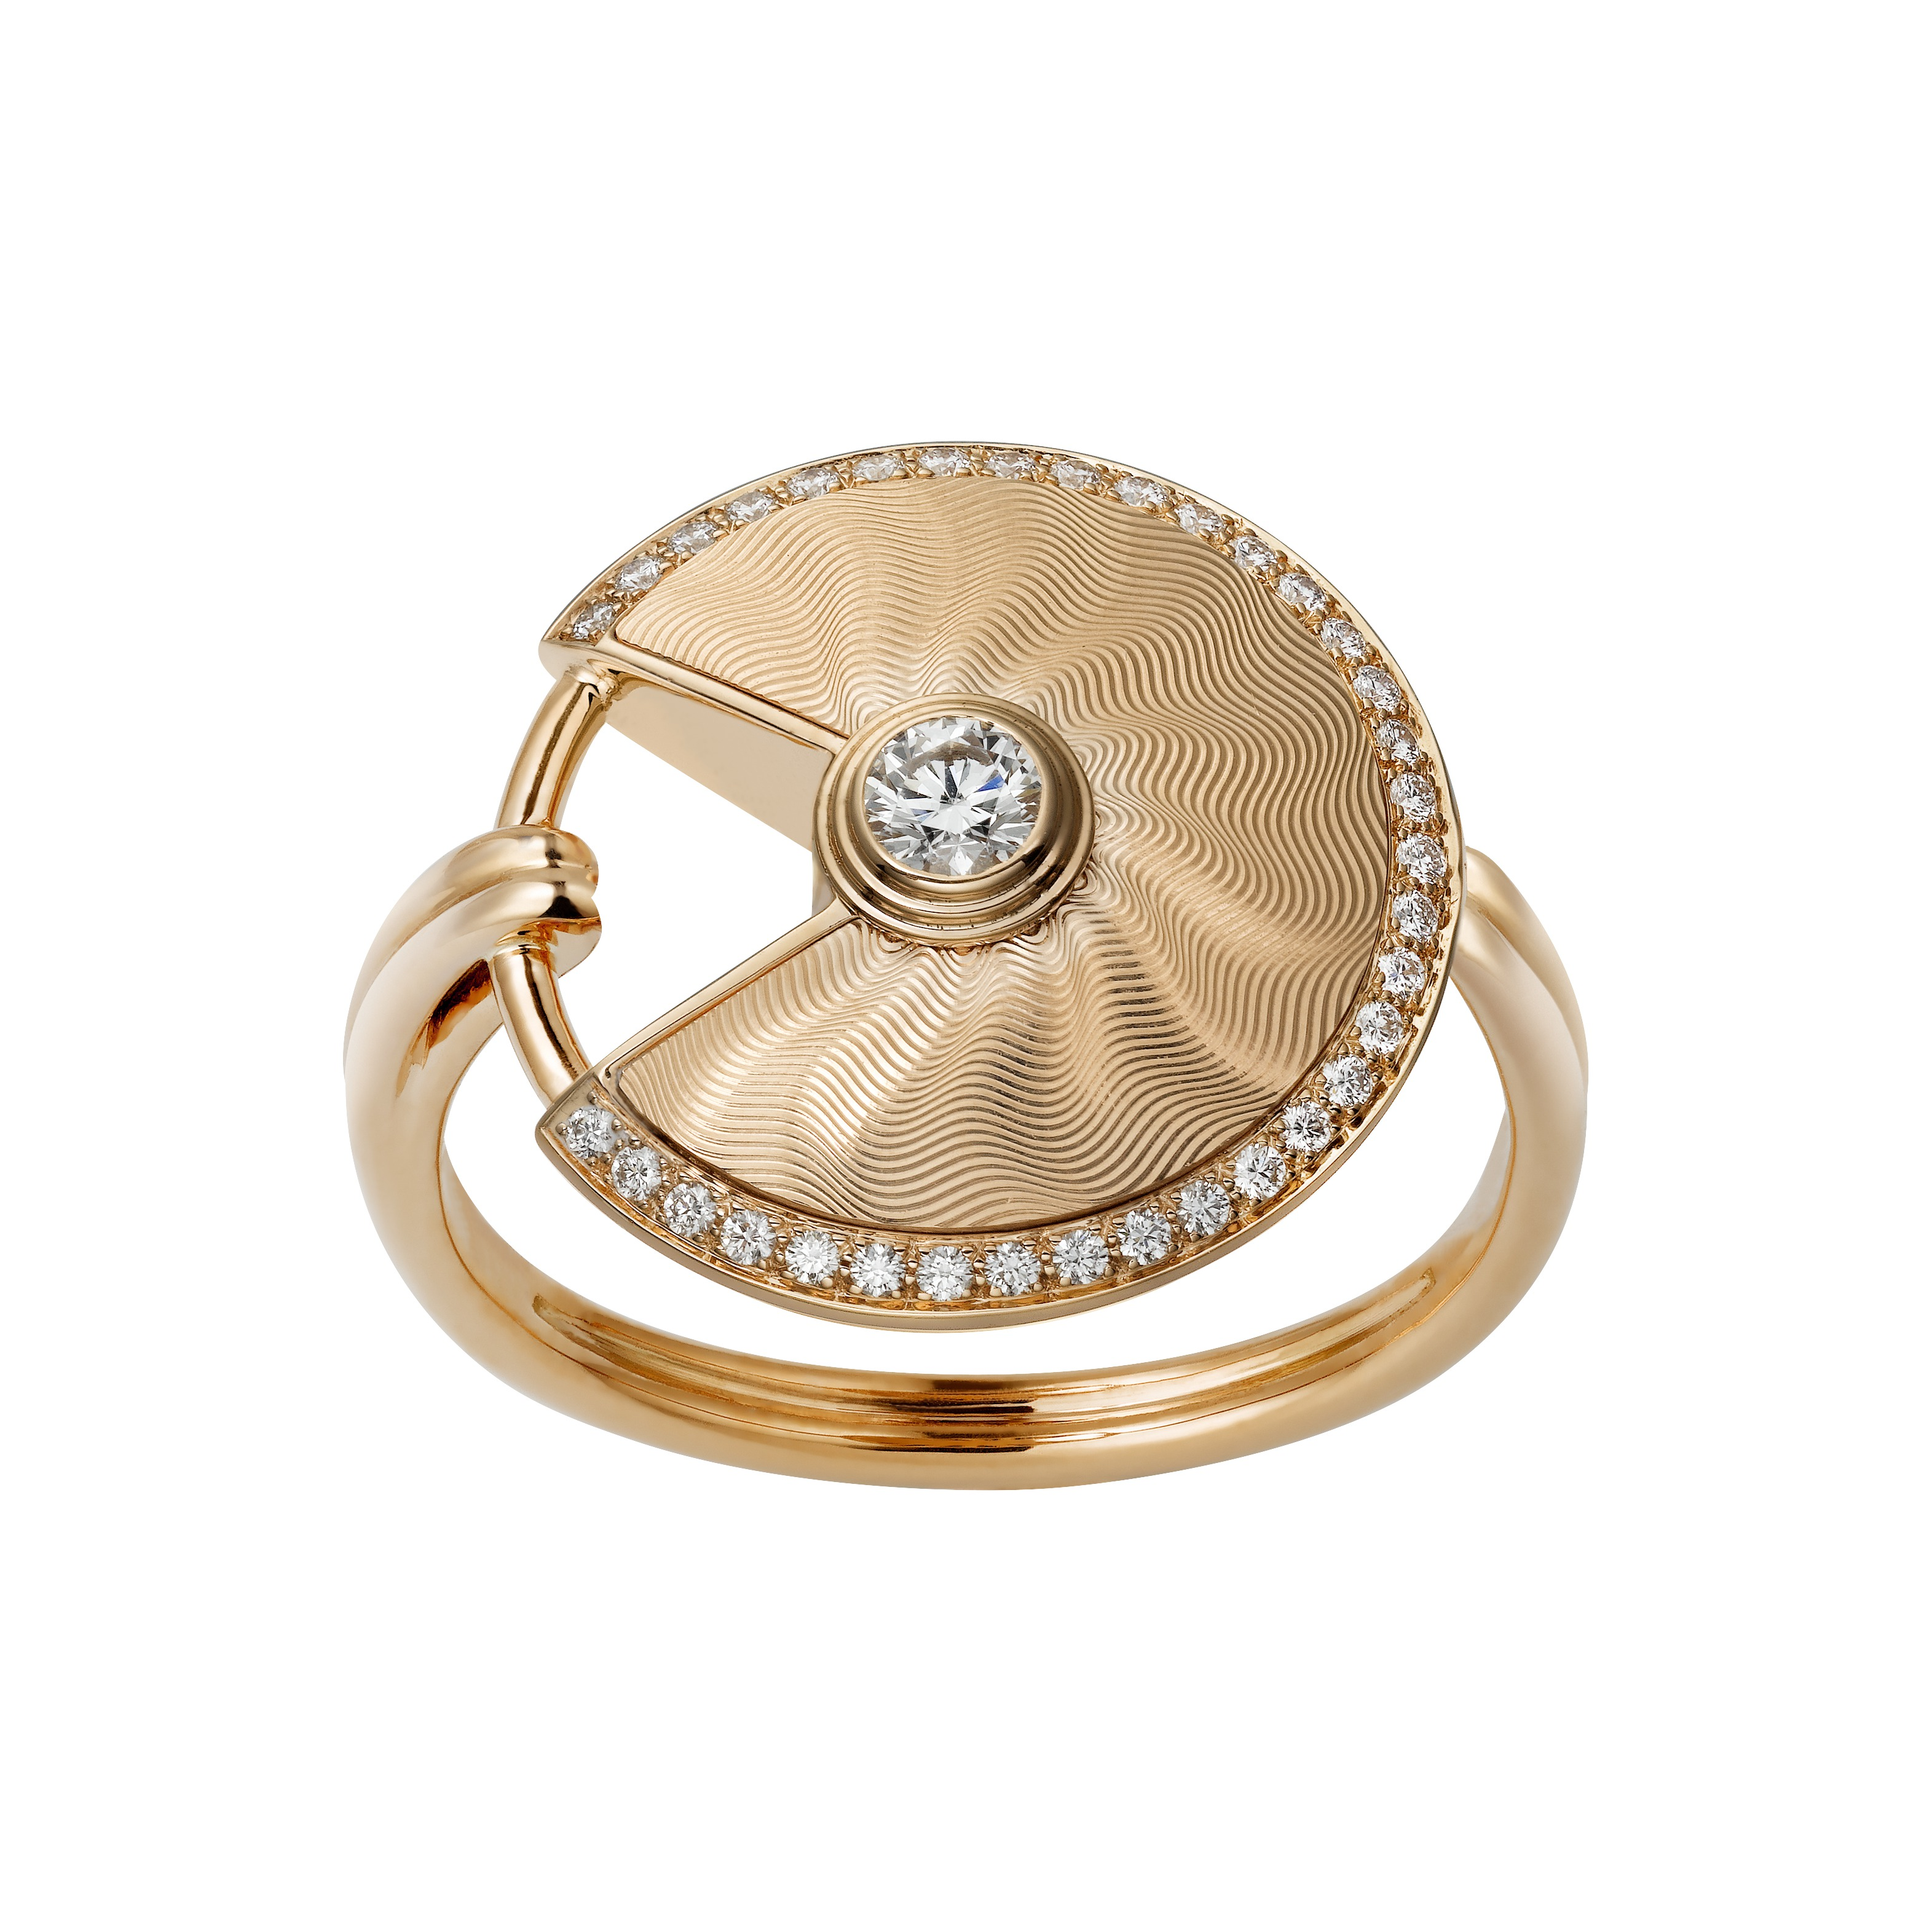 CARTIER Amulette de Cartier Ring_Small Model_Pink Gold and diamonds